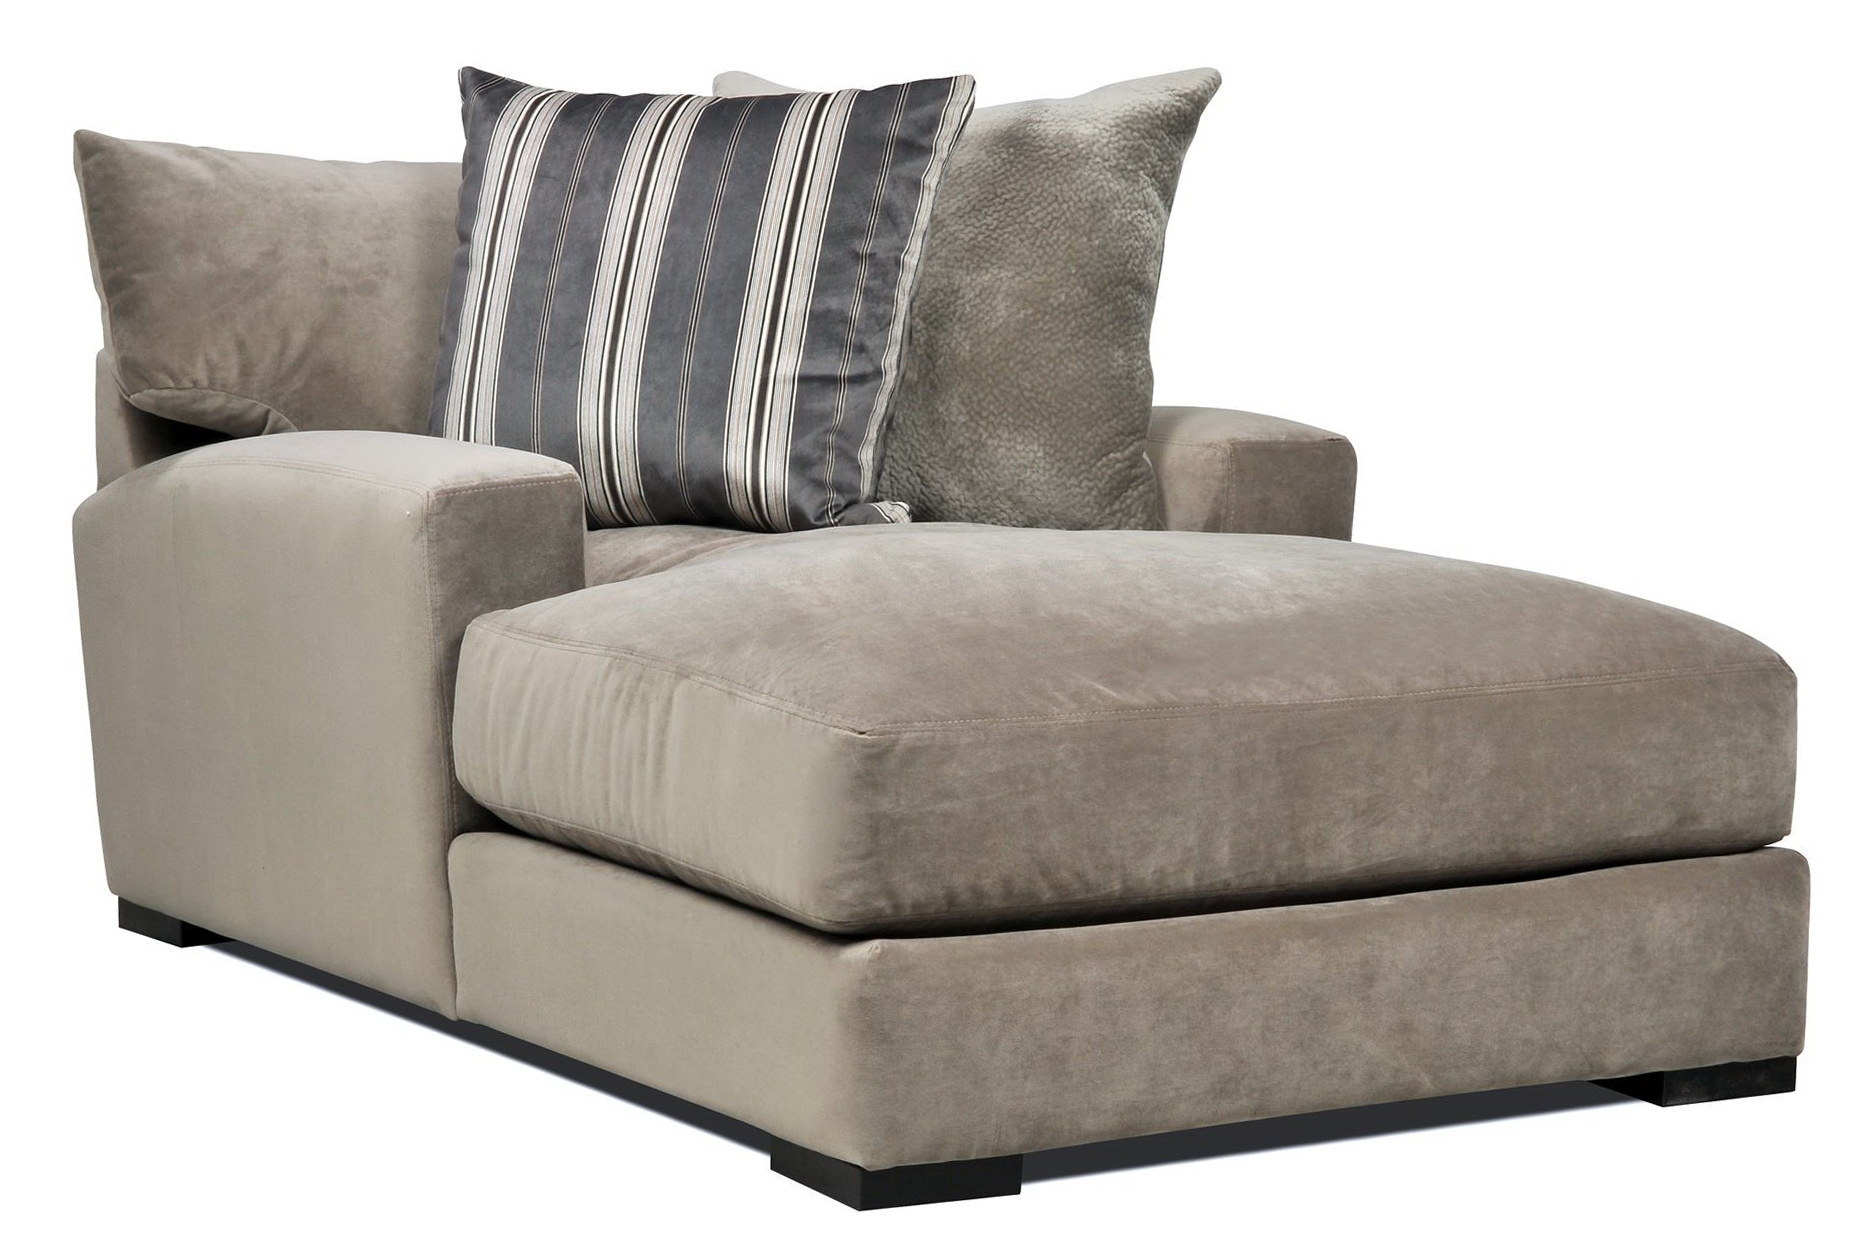 Double Wide Chaise Lounge Indoor With 2 Cushions (View 4 of 15)